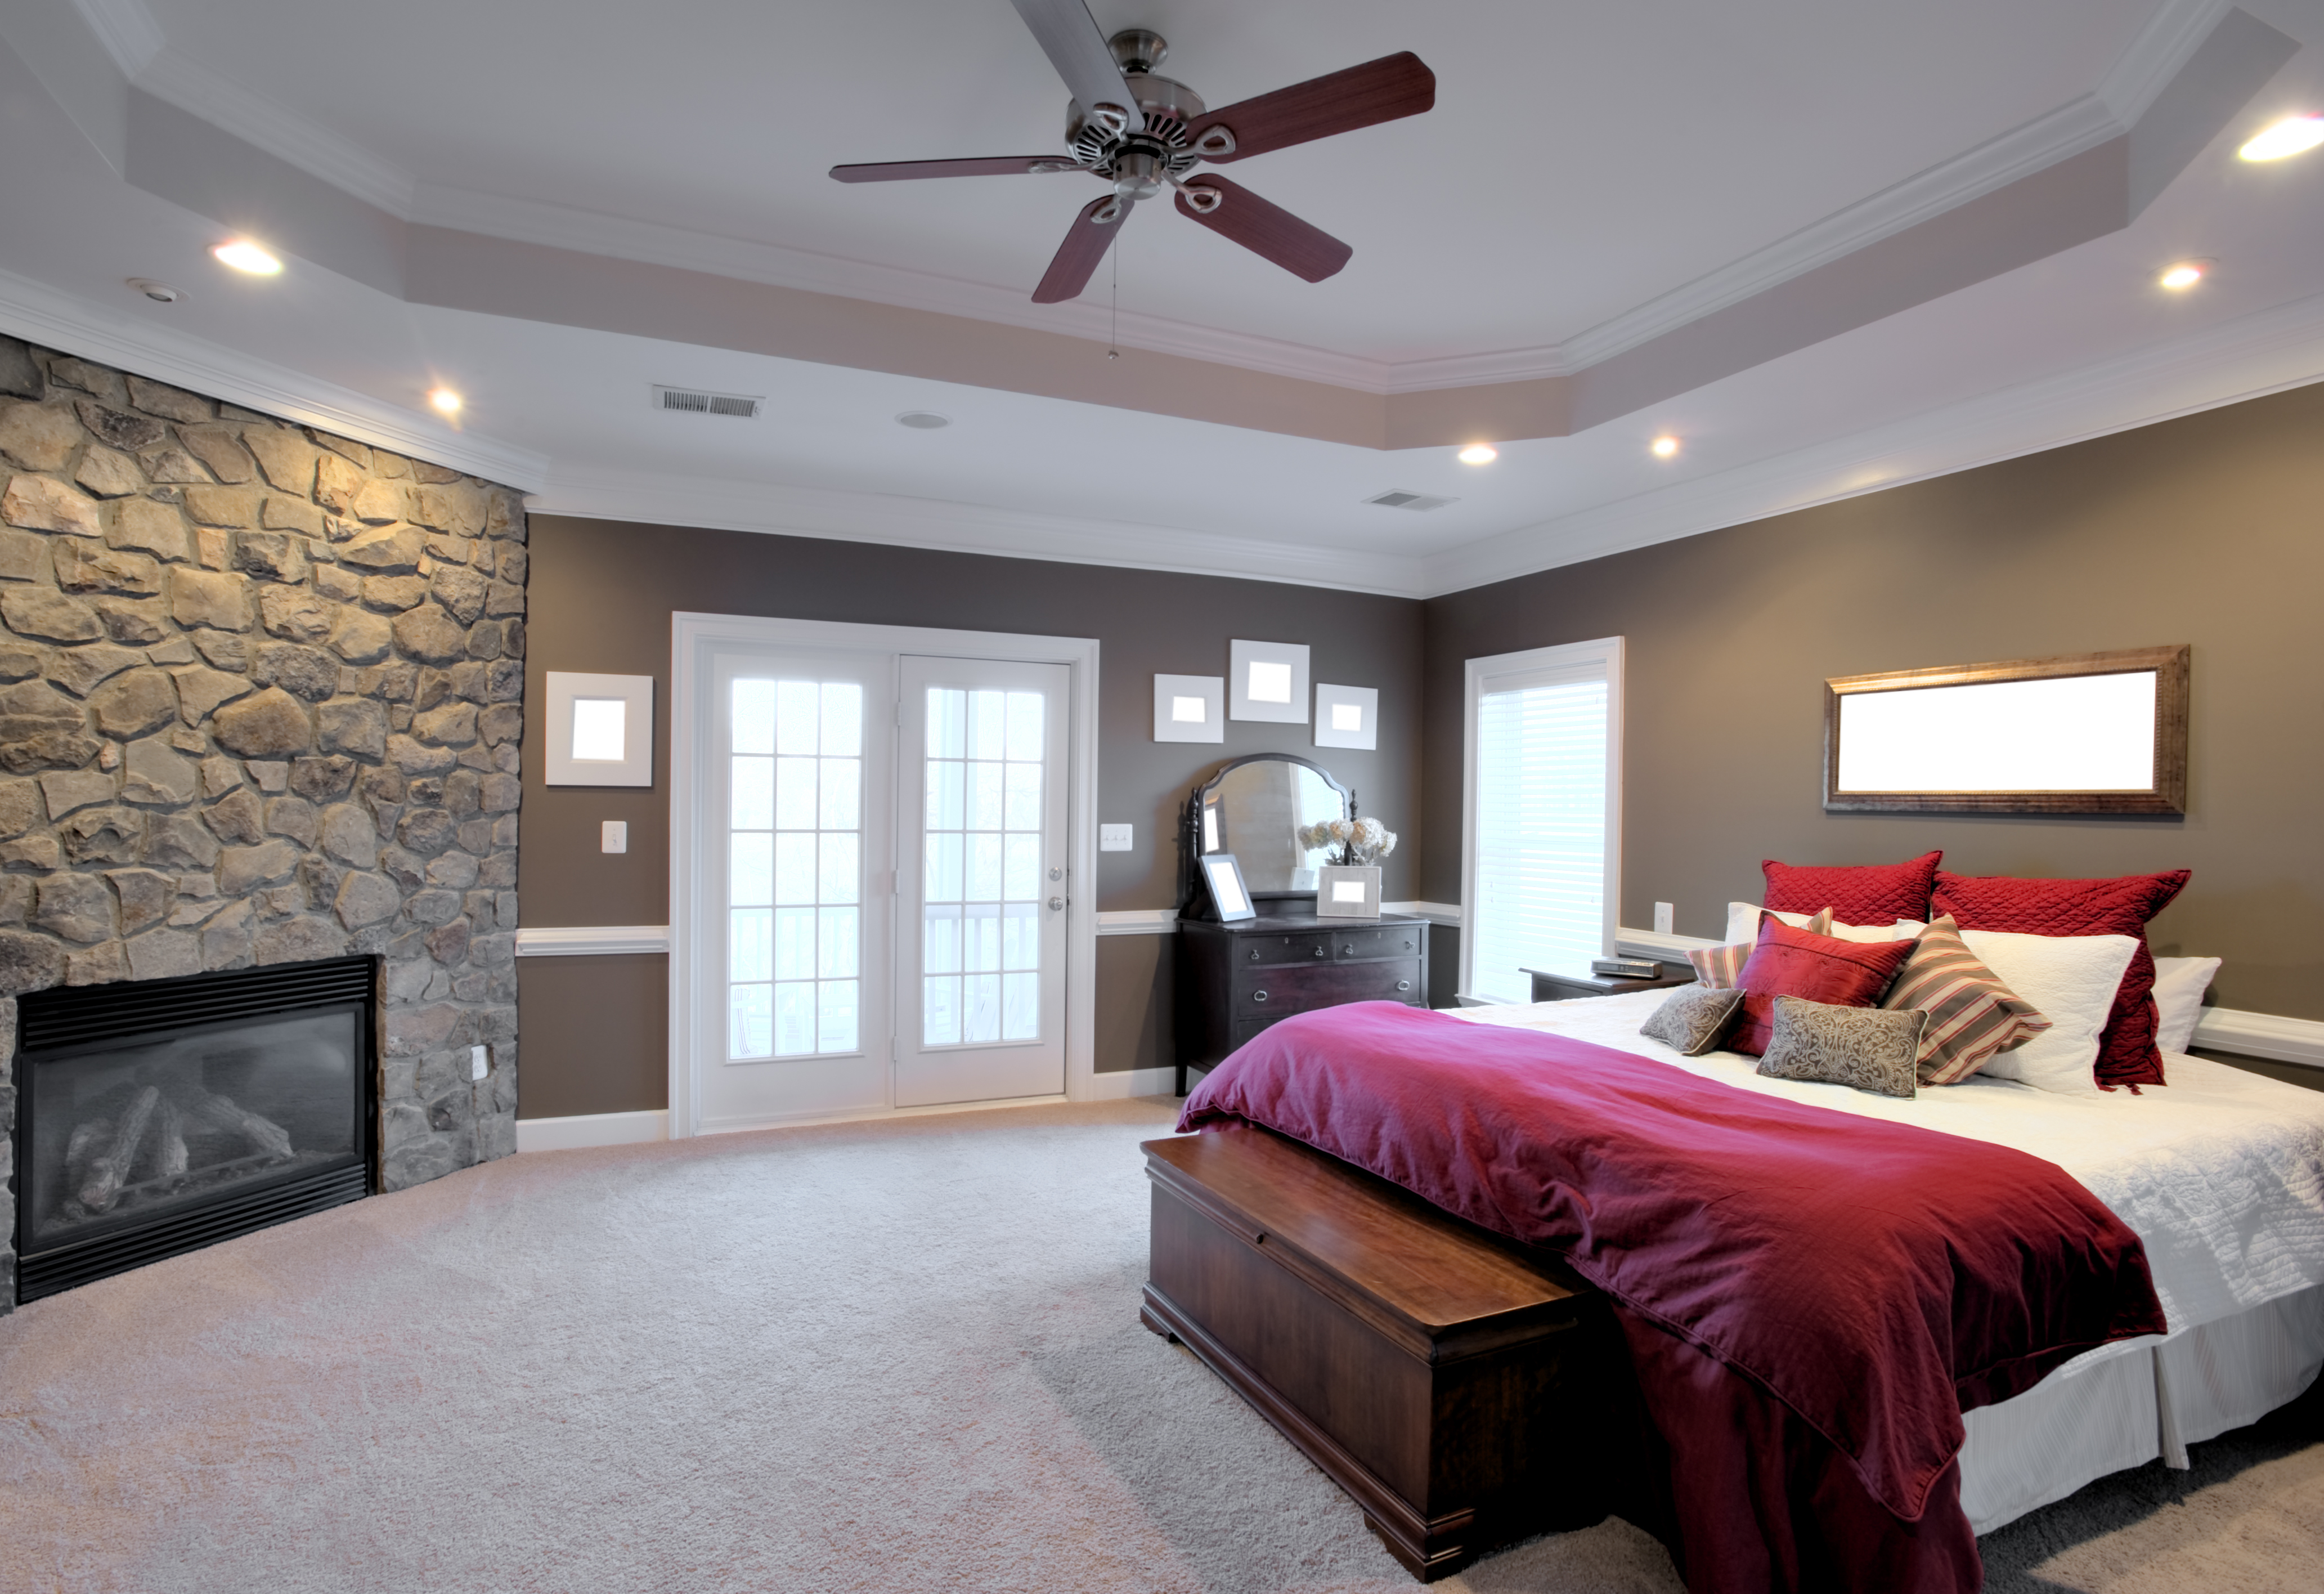 Proper ceiling fan rotation for cold weather OPPD